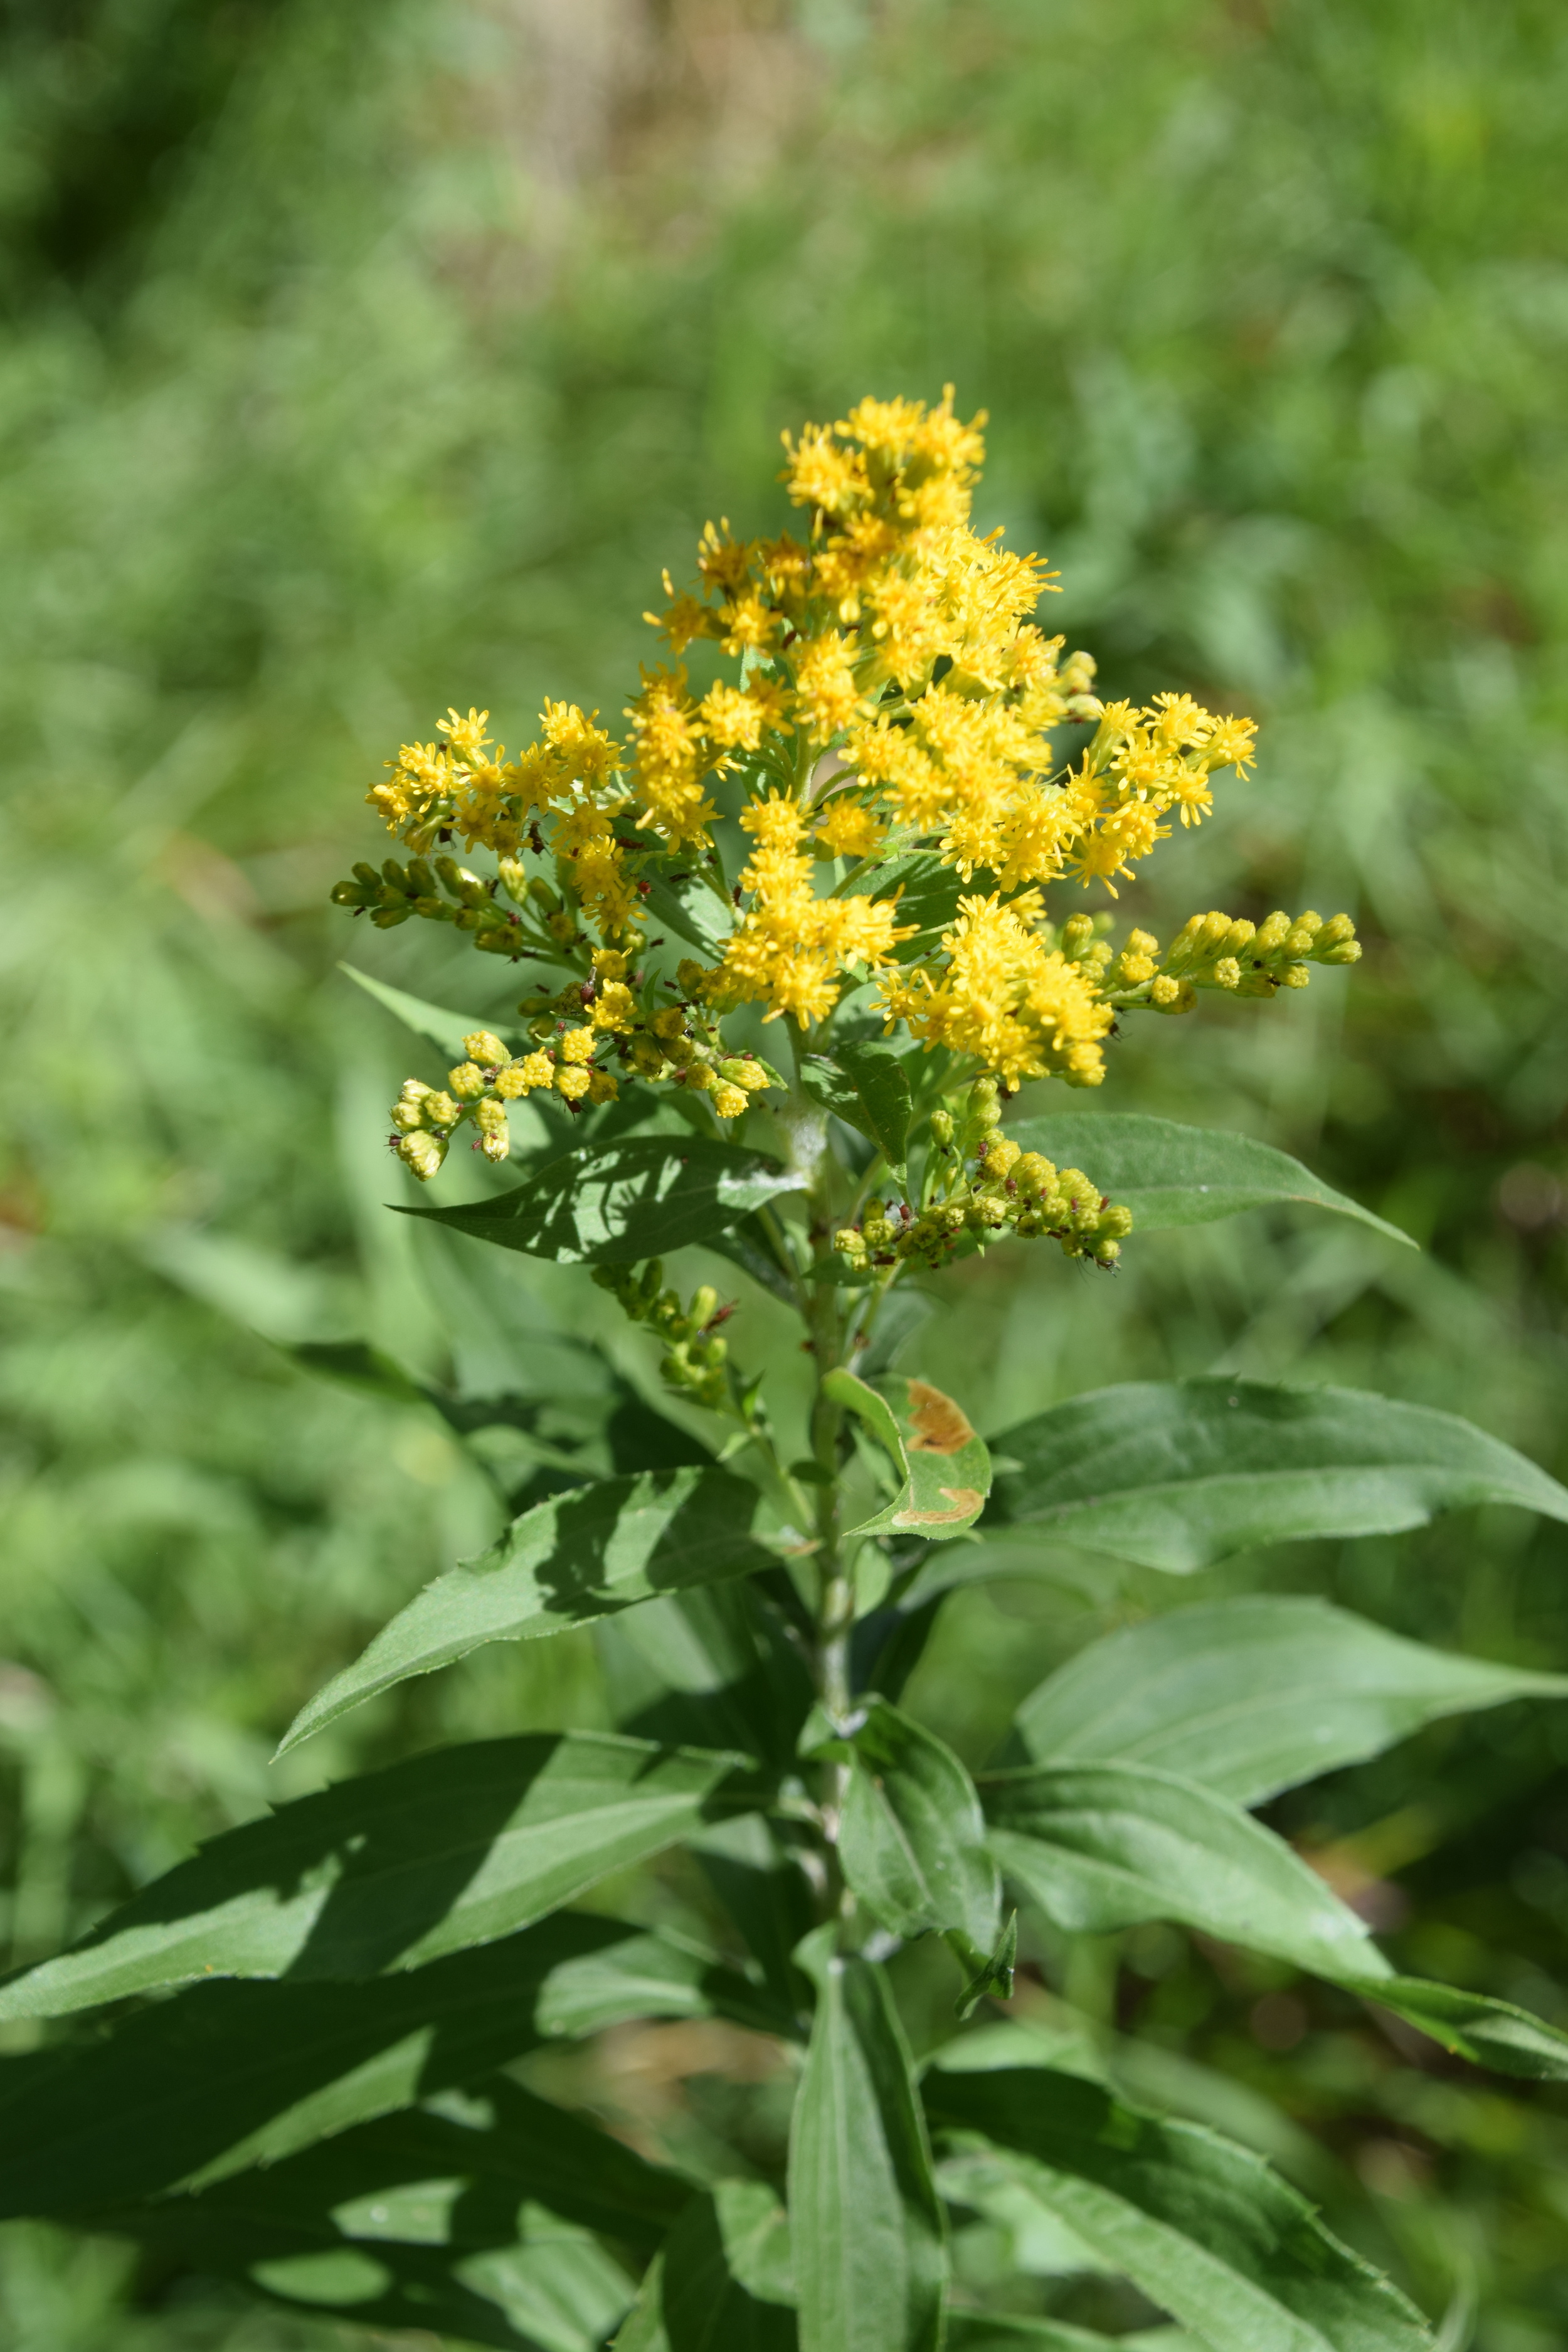 Canada goldenrod and other native plants are making a comeback at Glory Hills